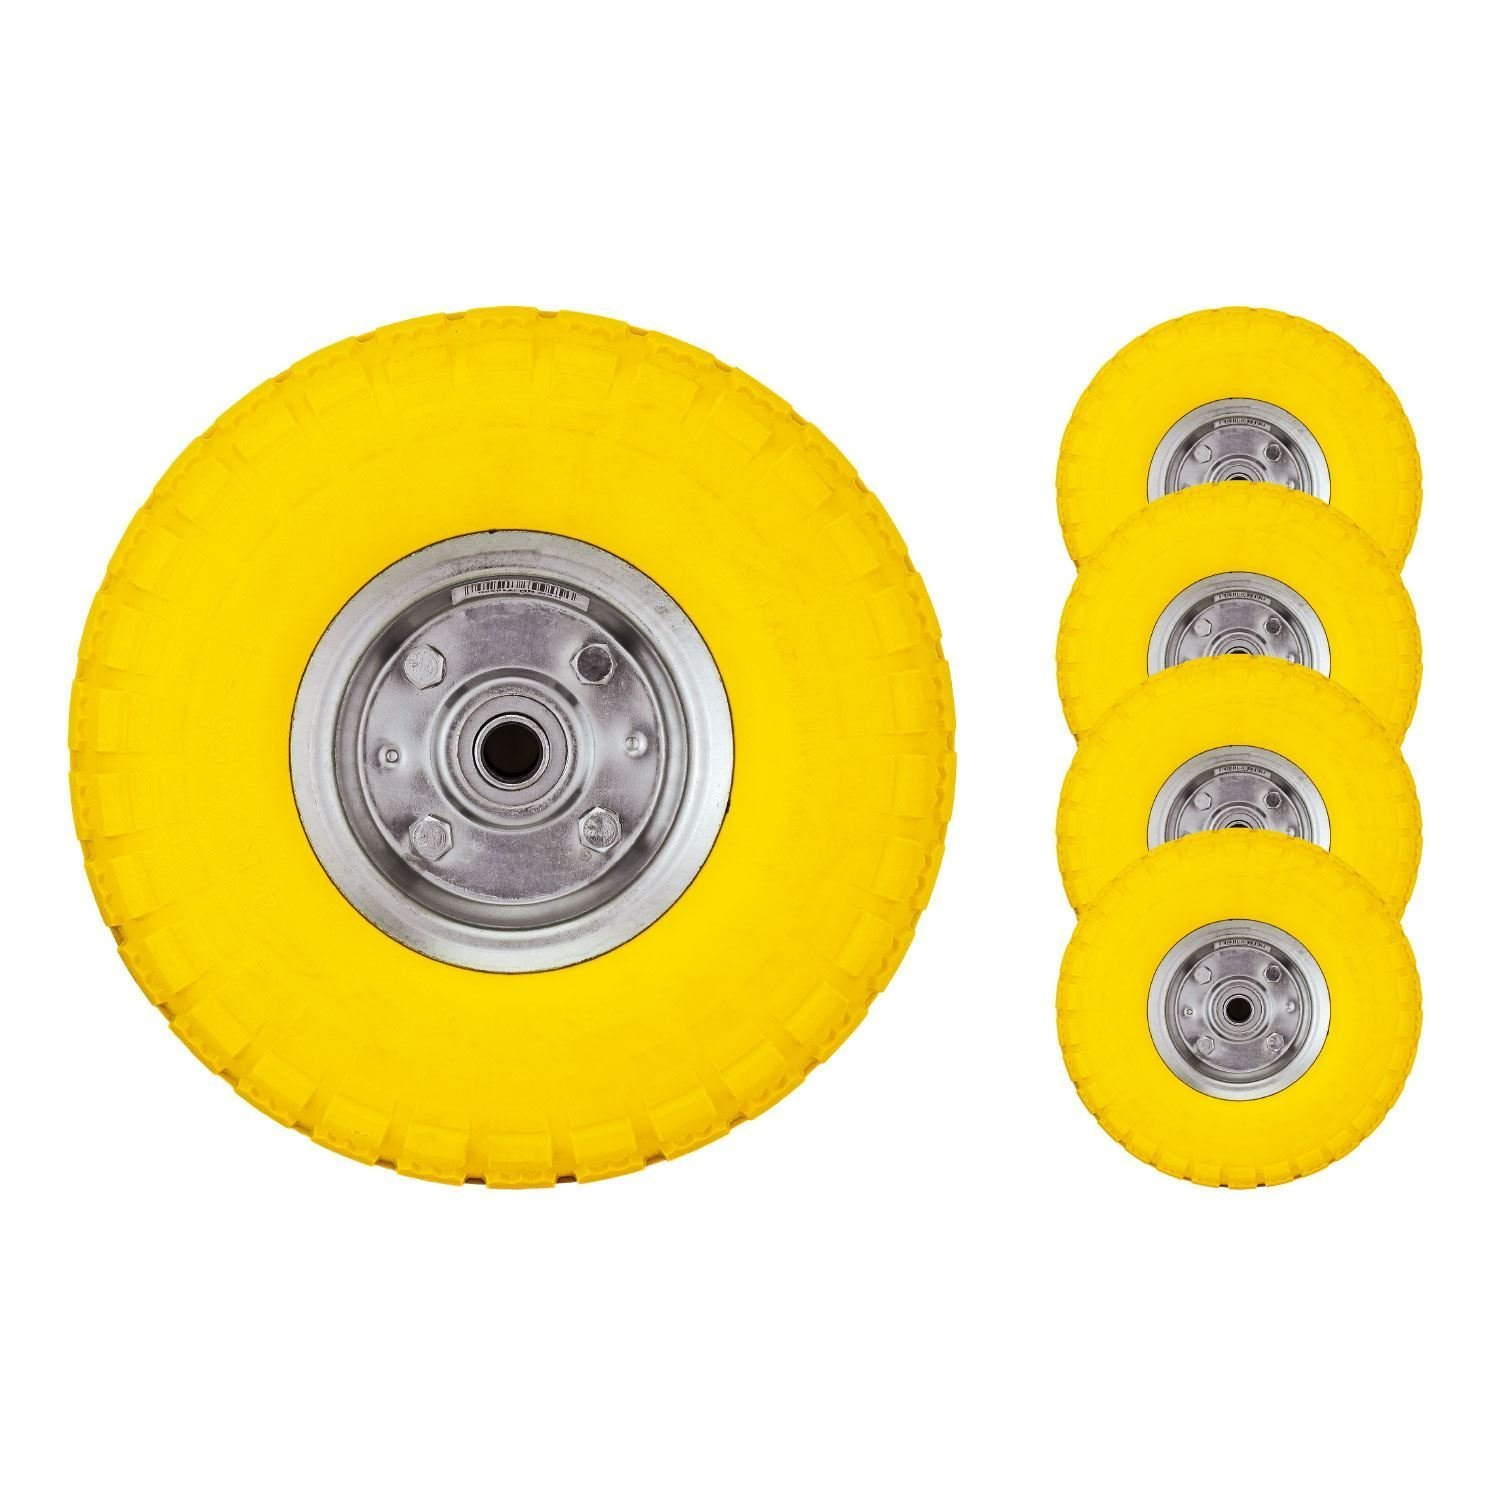 Bond Hardware® 4 x 10' Yellow Sack Truck Hand Trolley Cart Wheelbarrow Solid Rubber Wheel Tyre Tires